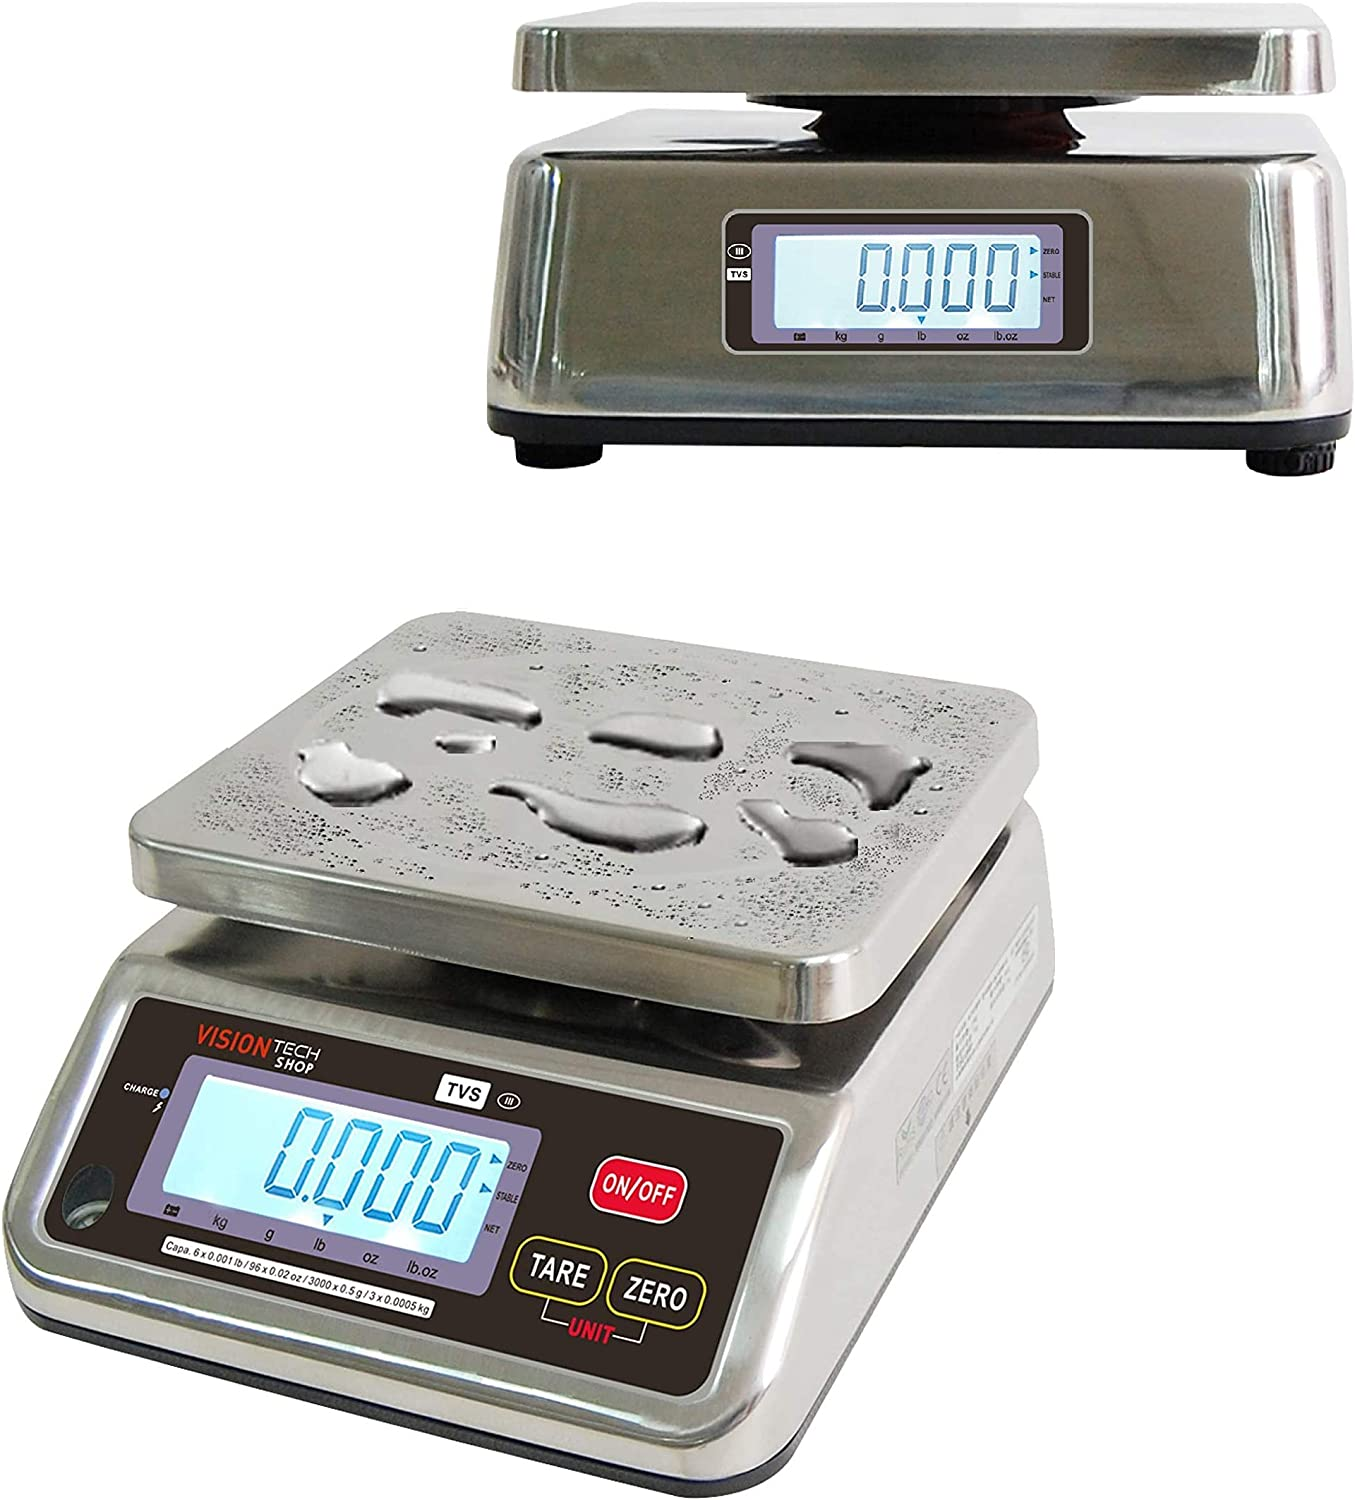 VisionTechShop TVS Portion control Stainless steel Washdown Scale, Lb/Oz/Kg/g Switchable, Low Profile Design, 6lb Capacity, 0.001lb Readability, Dual Display, NTEP Legal for Trade